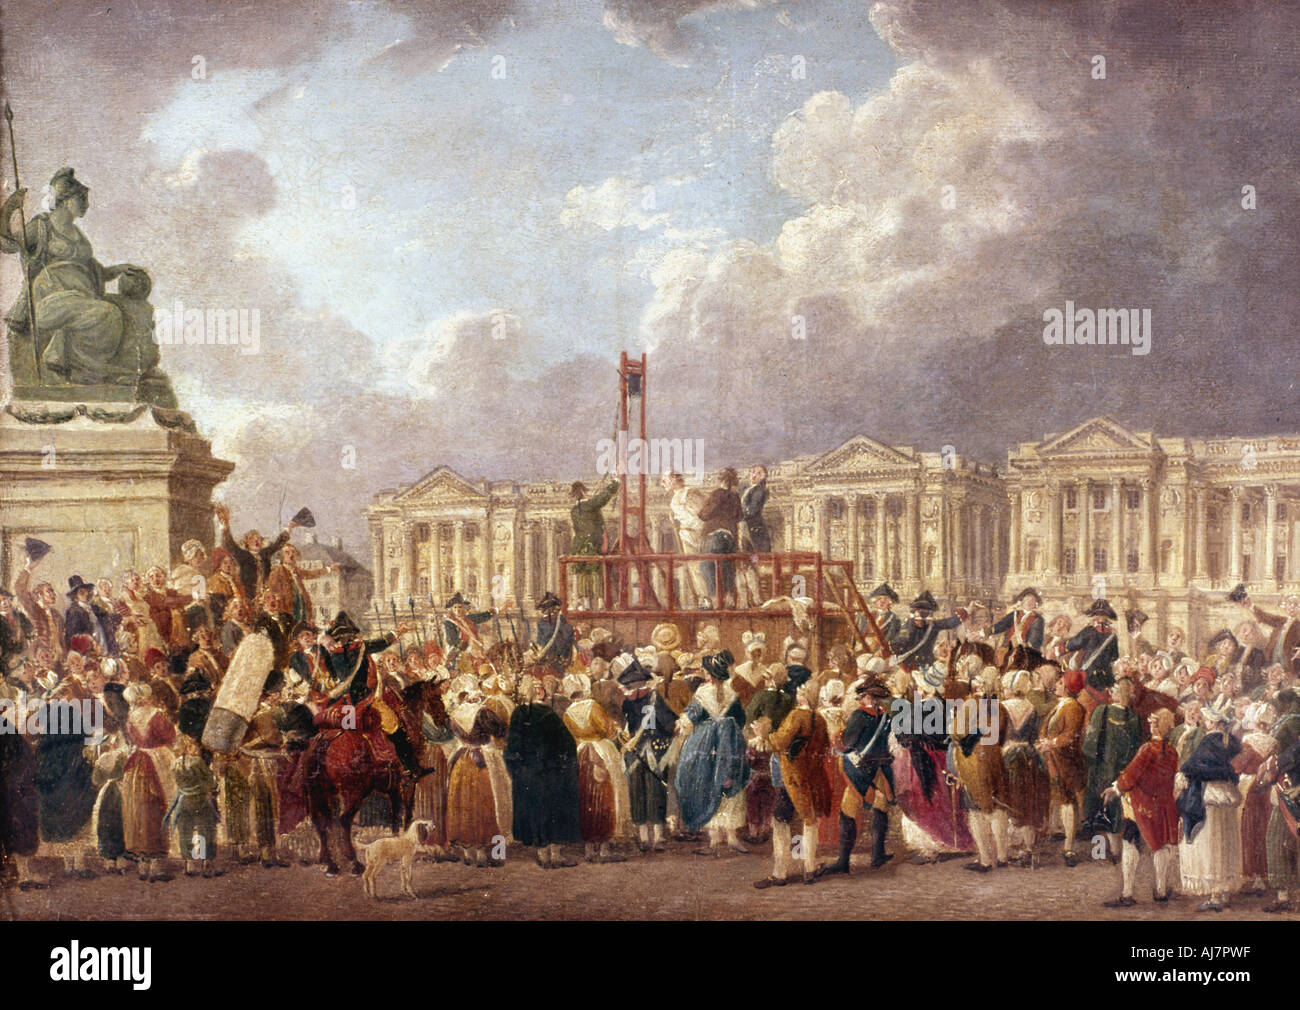 Execution Stock Photos  Execution Stock Images  Alamy Execution By Guillotine In Paris During The French Revolution S     Stock Image